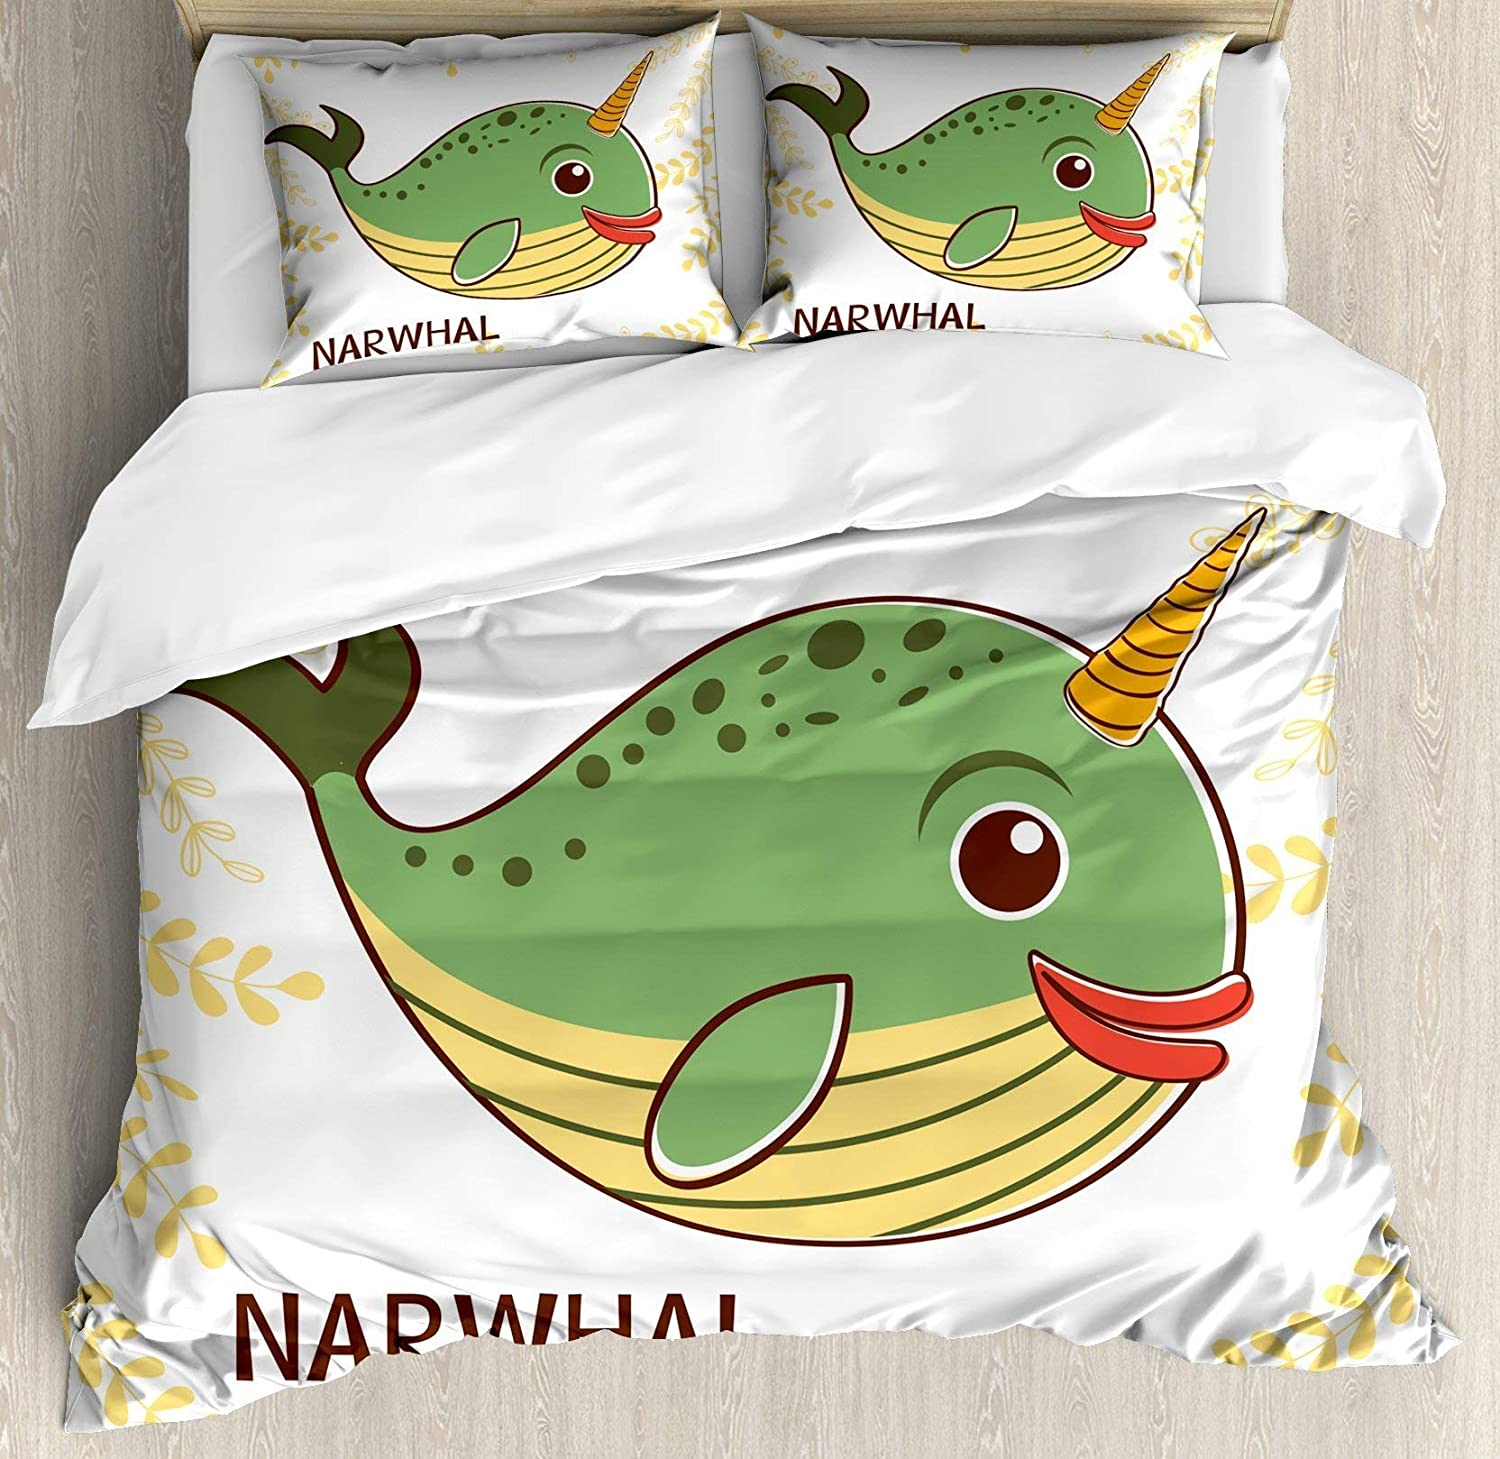 USOPHIA Narwhal 4 Pieces Bed Sheets Set Twin Size, Aquatic Mammal with colorful Composition Foliage Background Cartoon Floral Duvet Cover Set, Fern Green orange Yellow